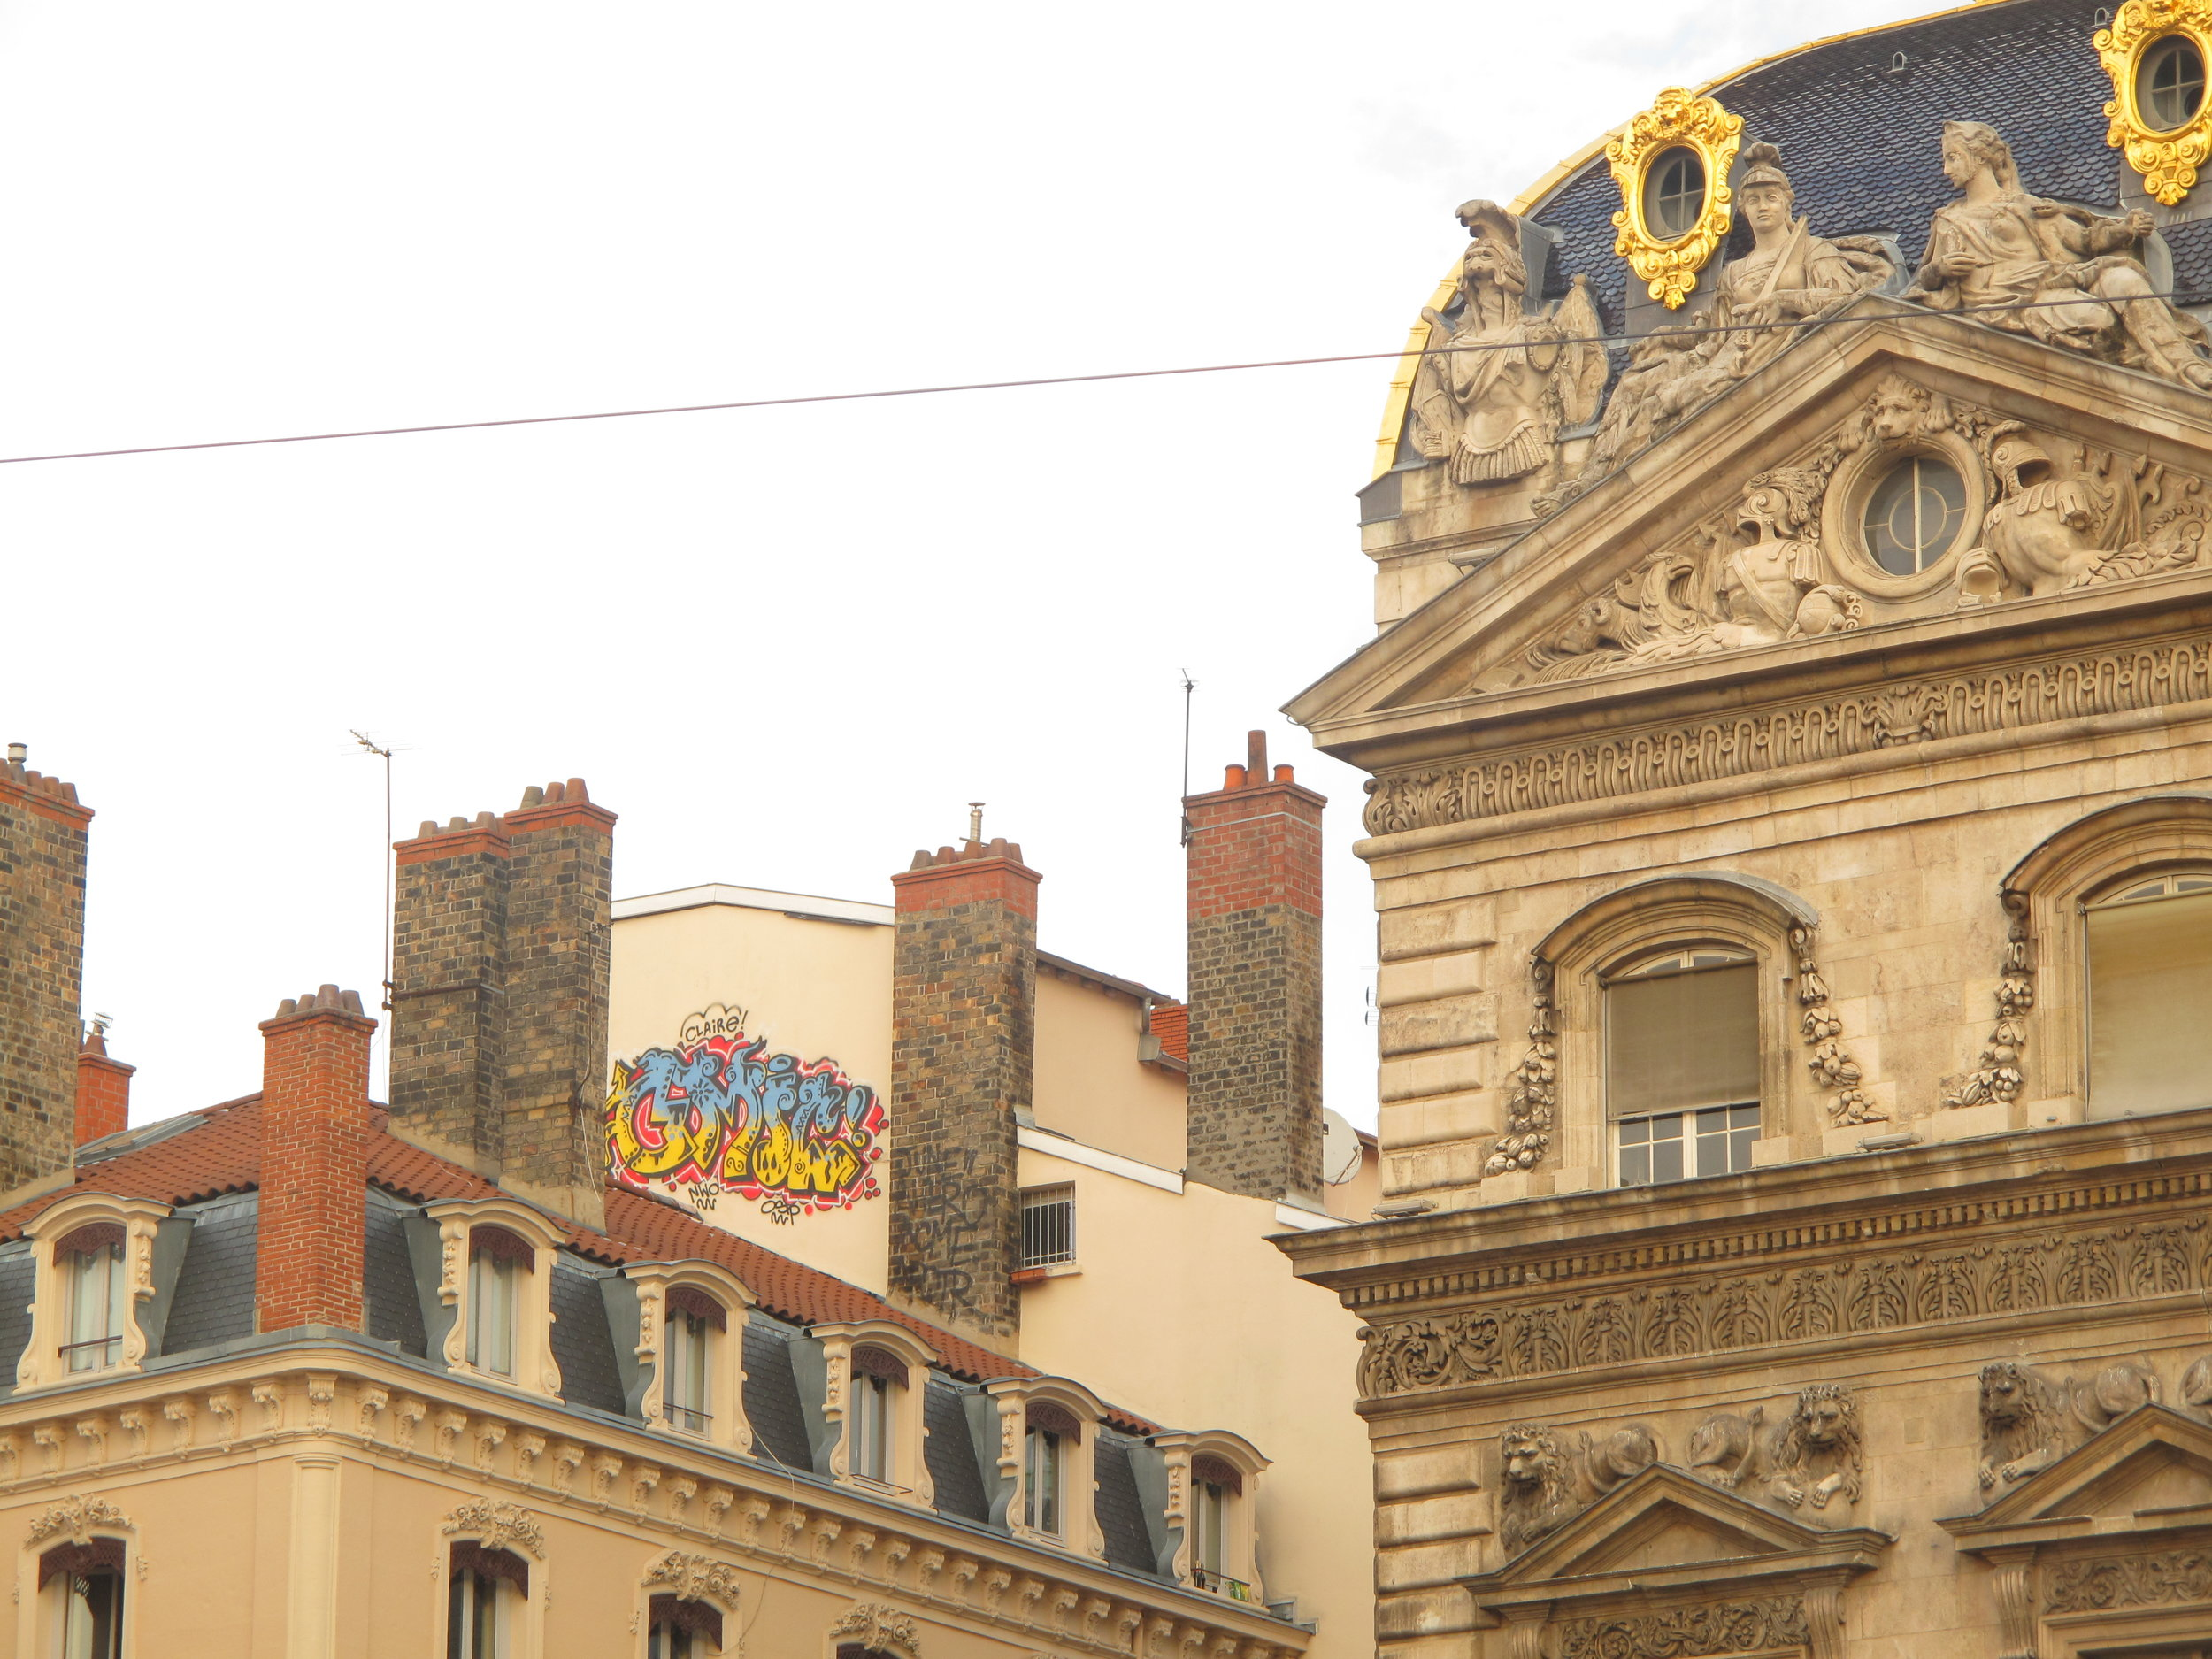 LYON OF CONTRASTS